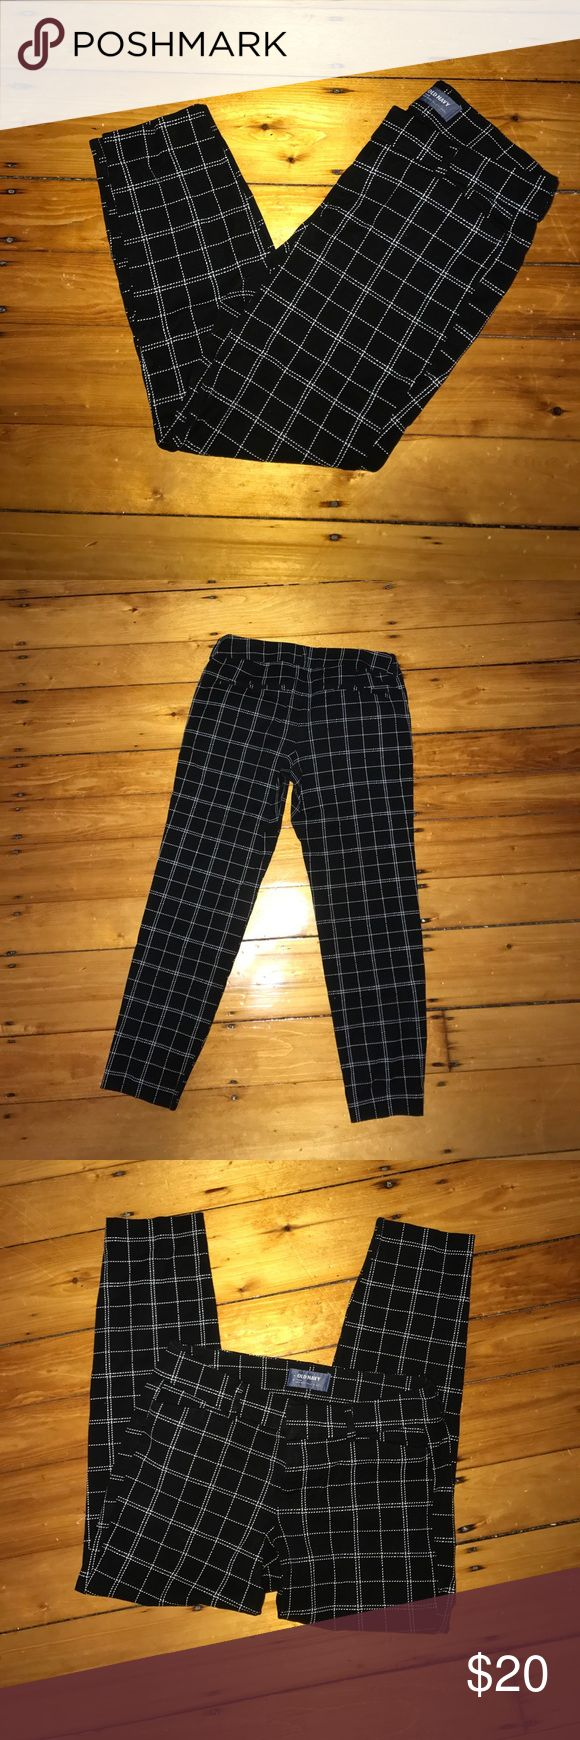 Old Navy Pixie Pants! Old Nacy Pixie Pants. Mid-rise. Great condition! Never been worn. Ankle length. Great for work. Reasonable offers are welcomed :) Old Navy Pants Ankle & Cropped